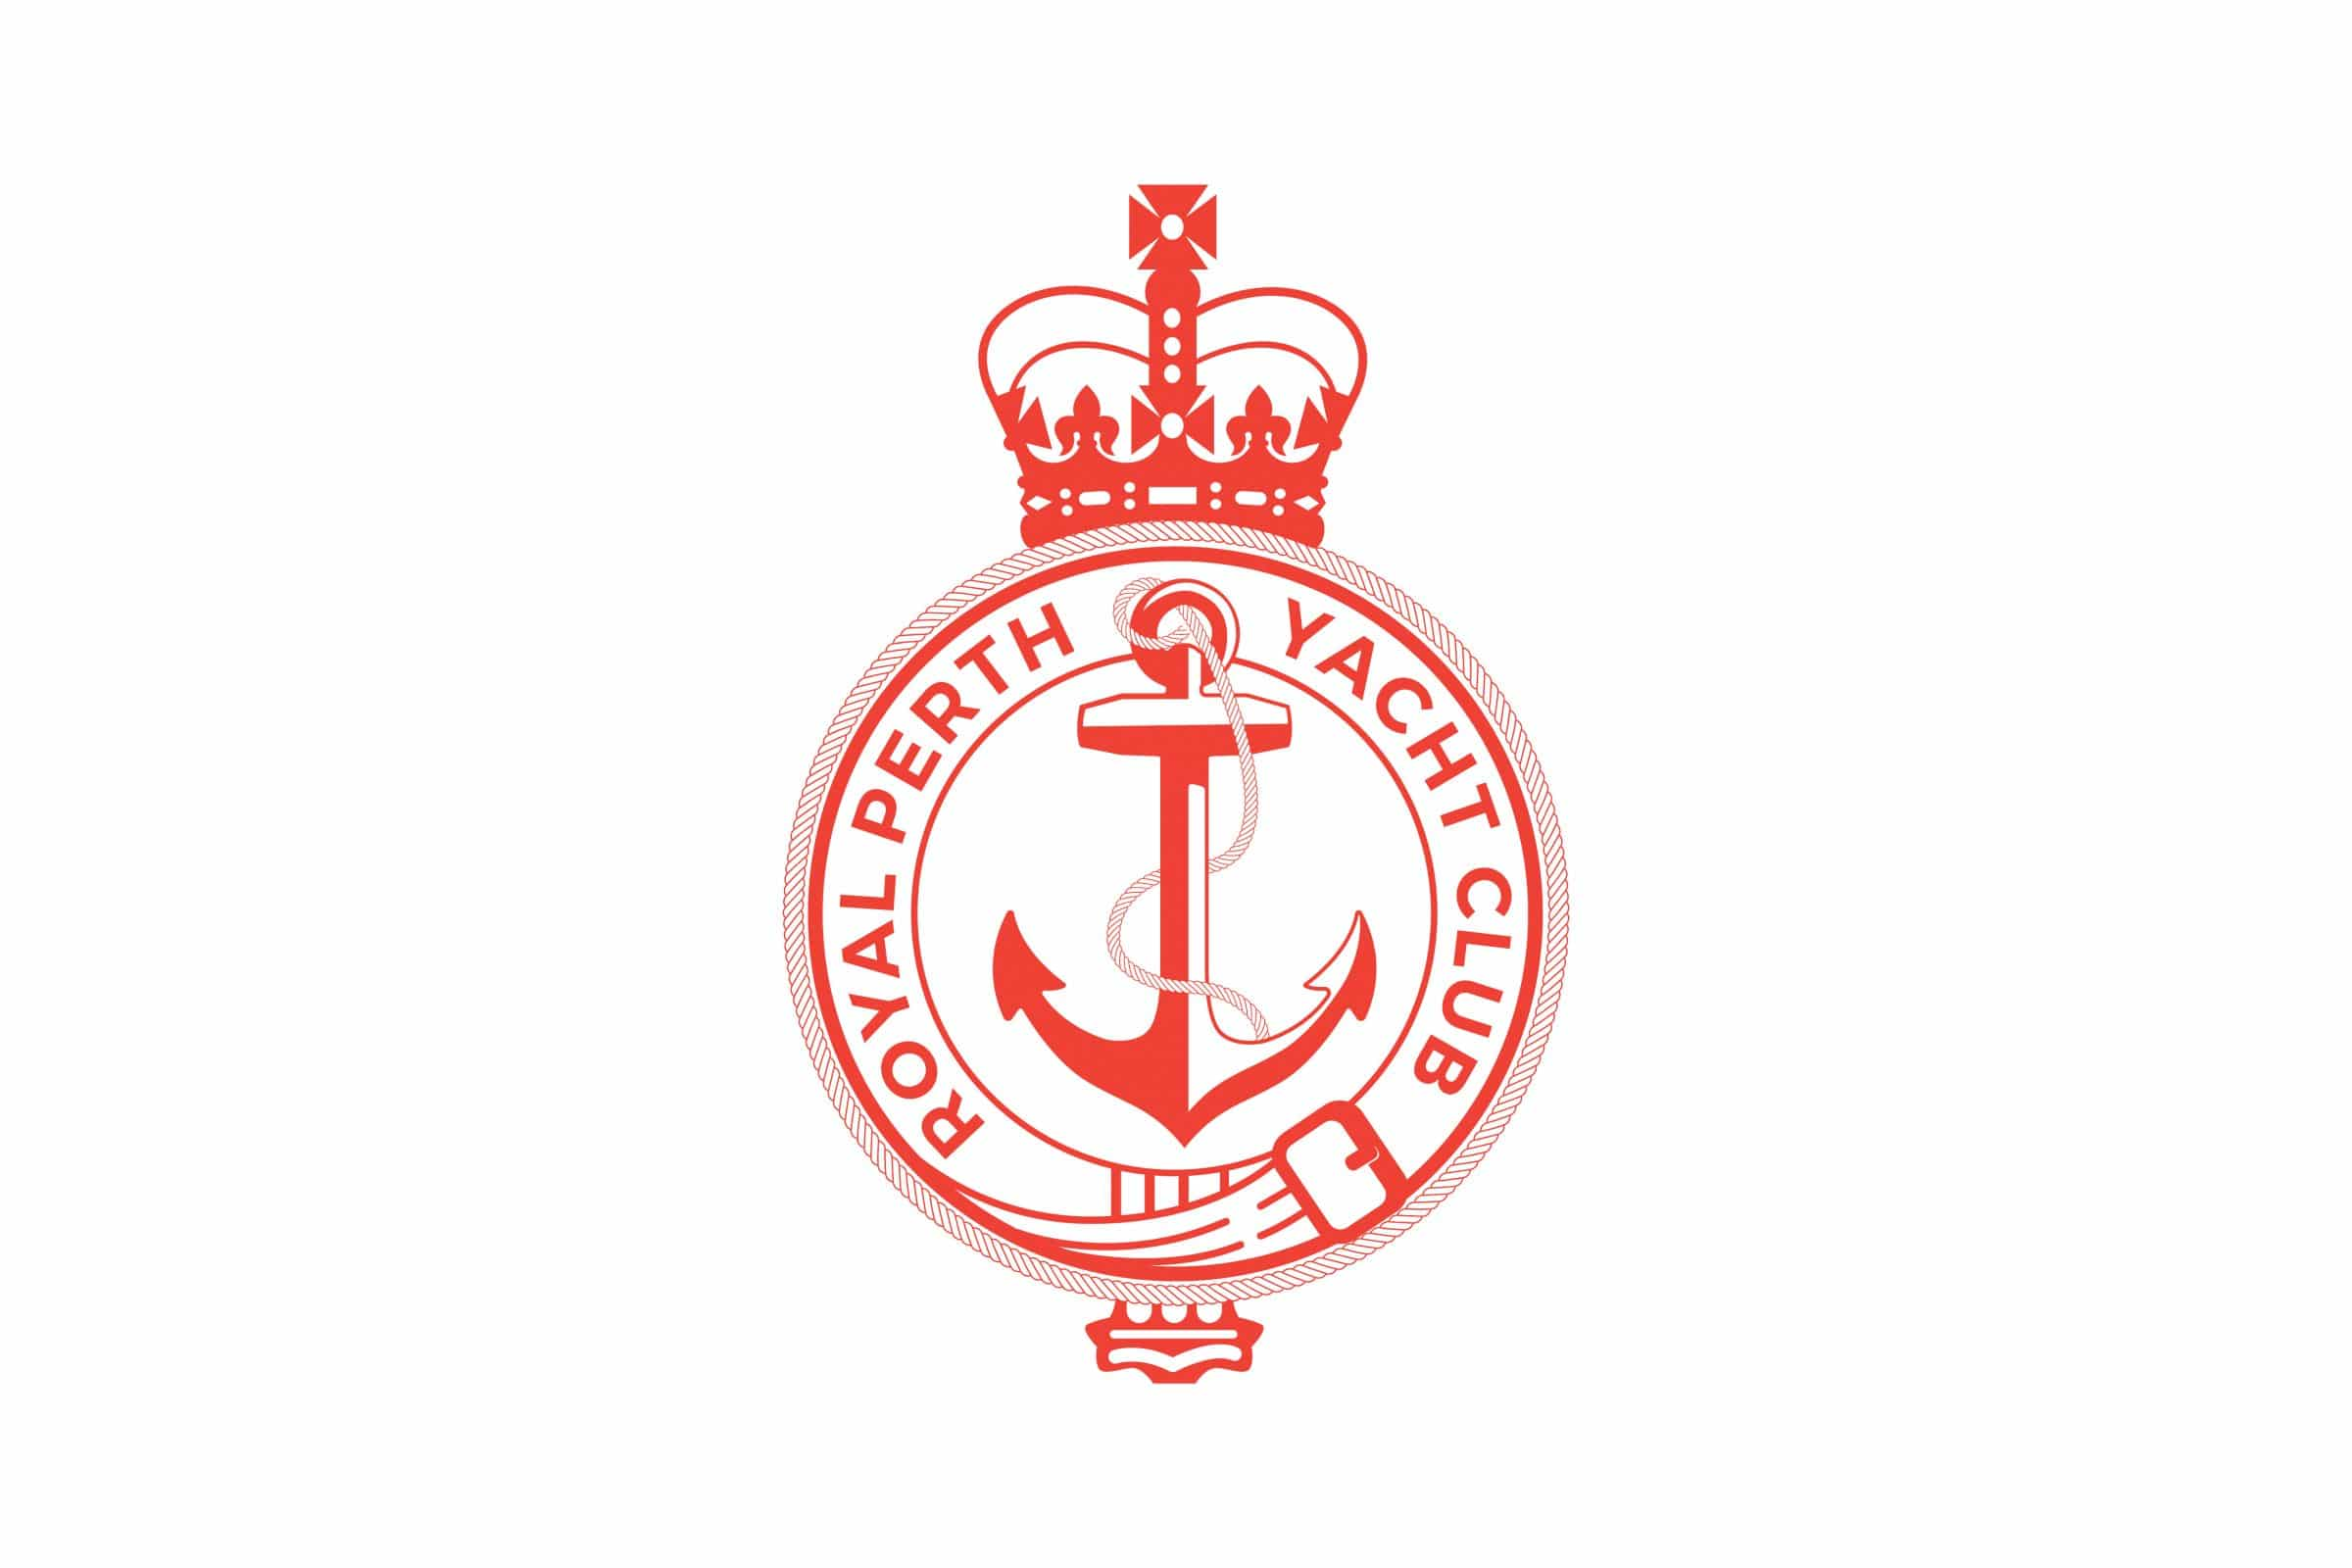 royal perth yacht club logo